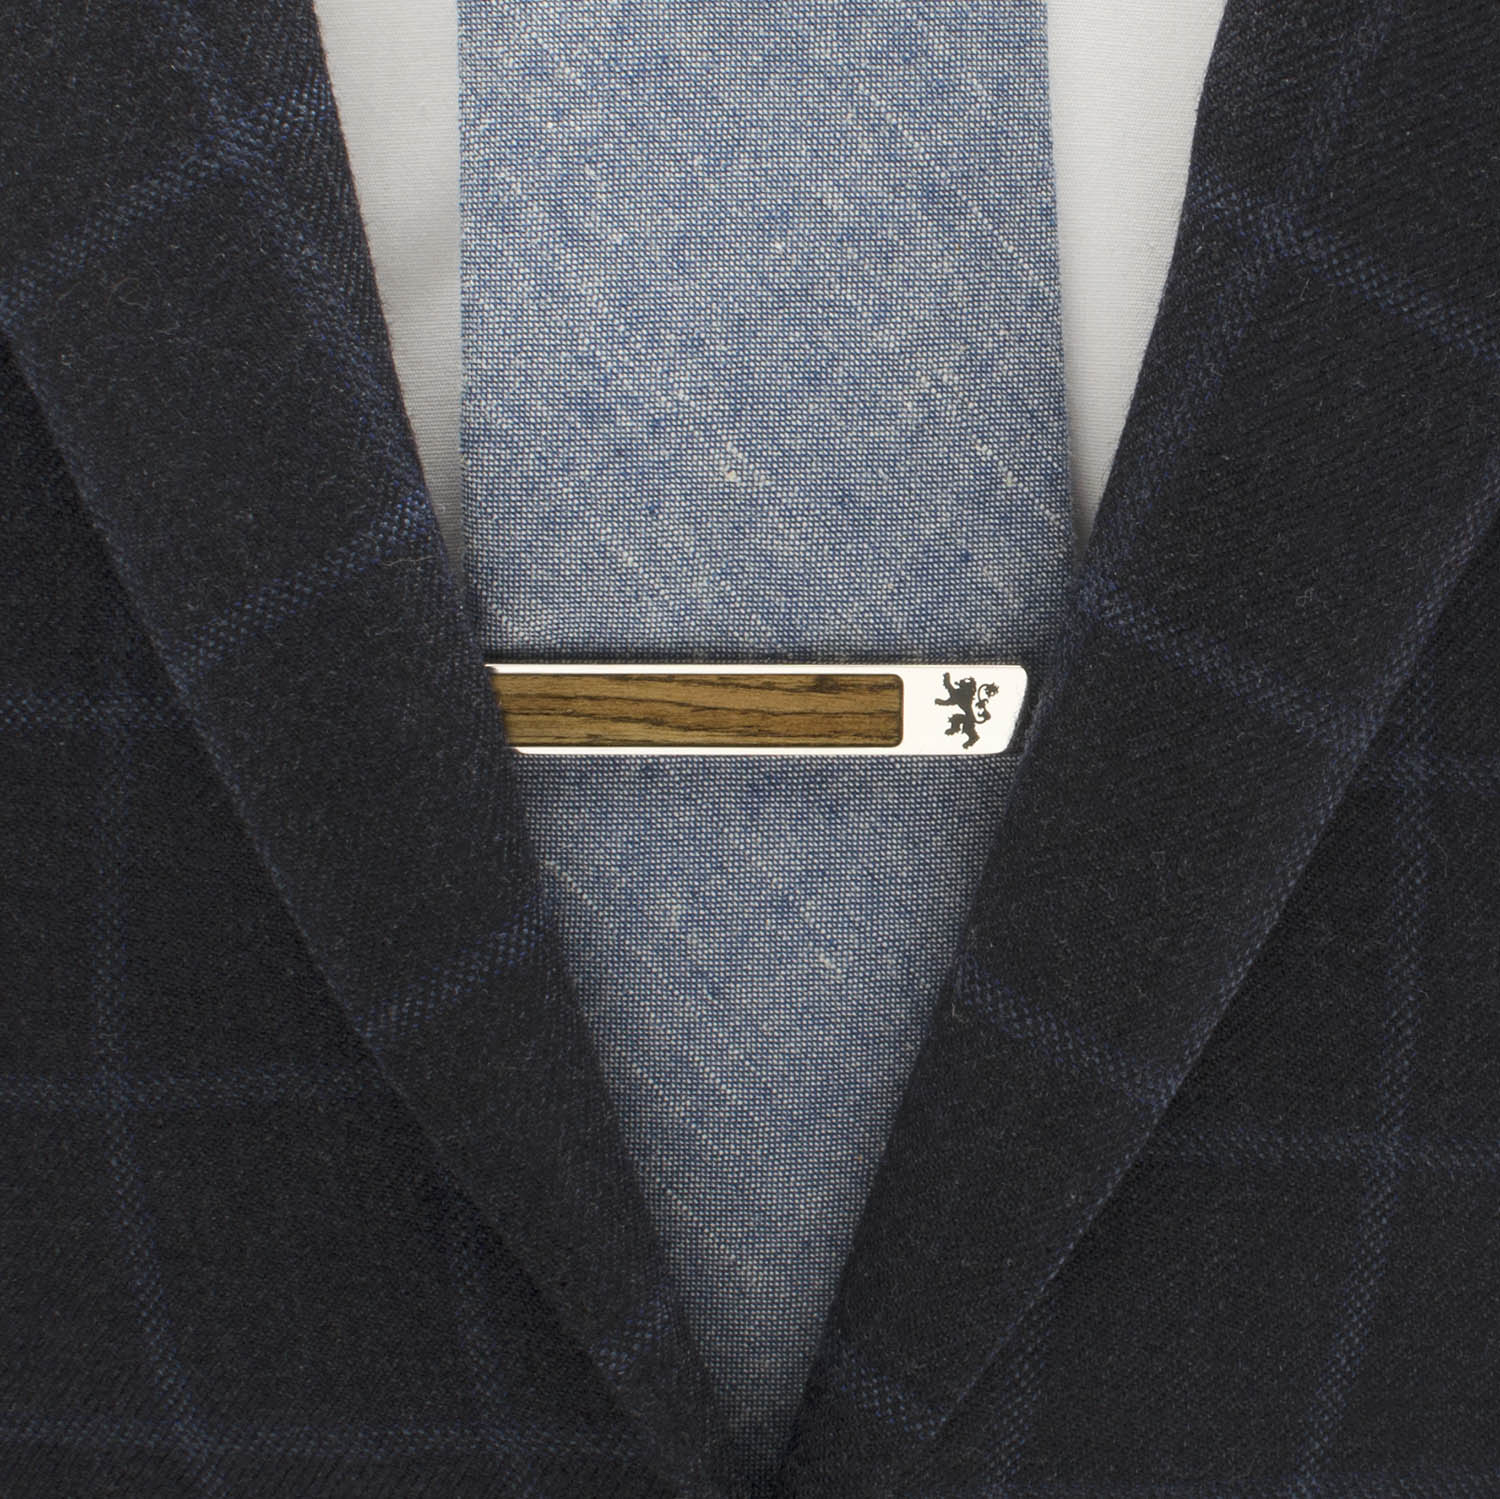 Wood Inlaid Game of Thrones Tie Bar